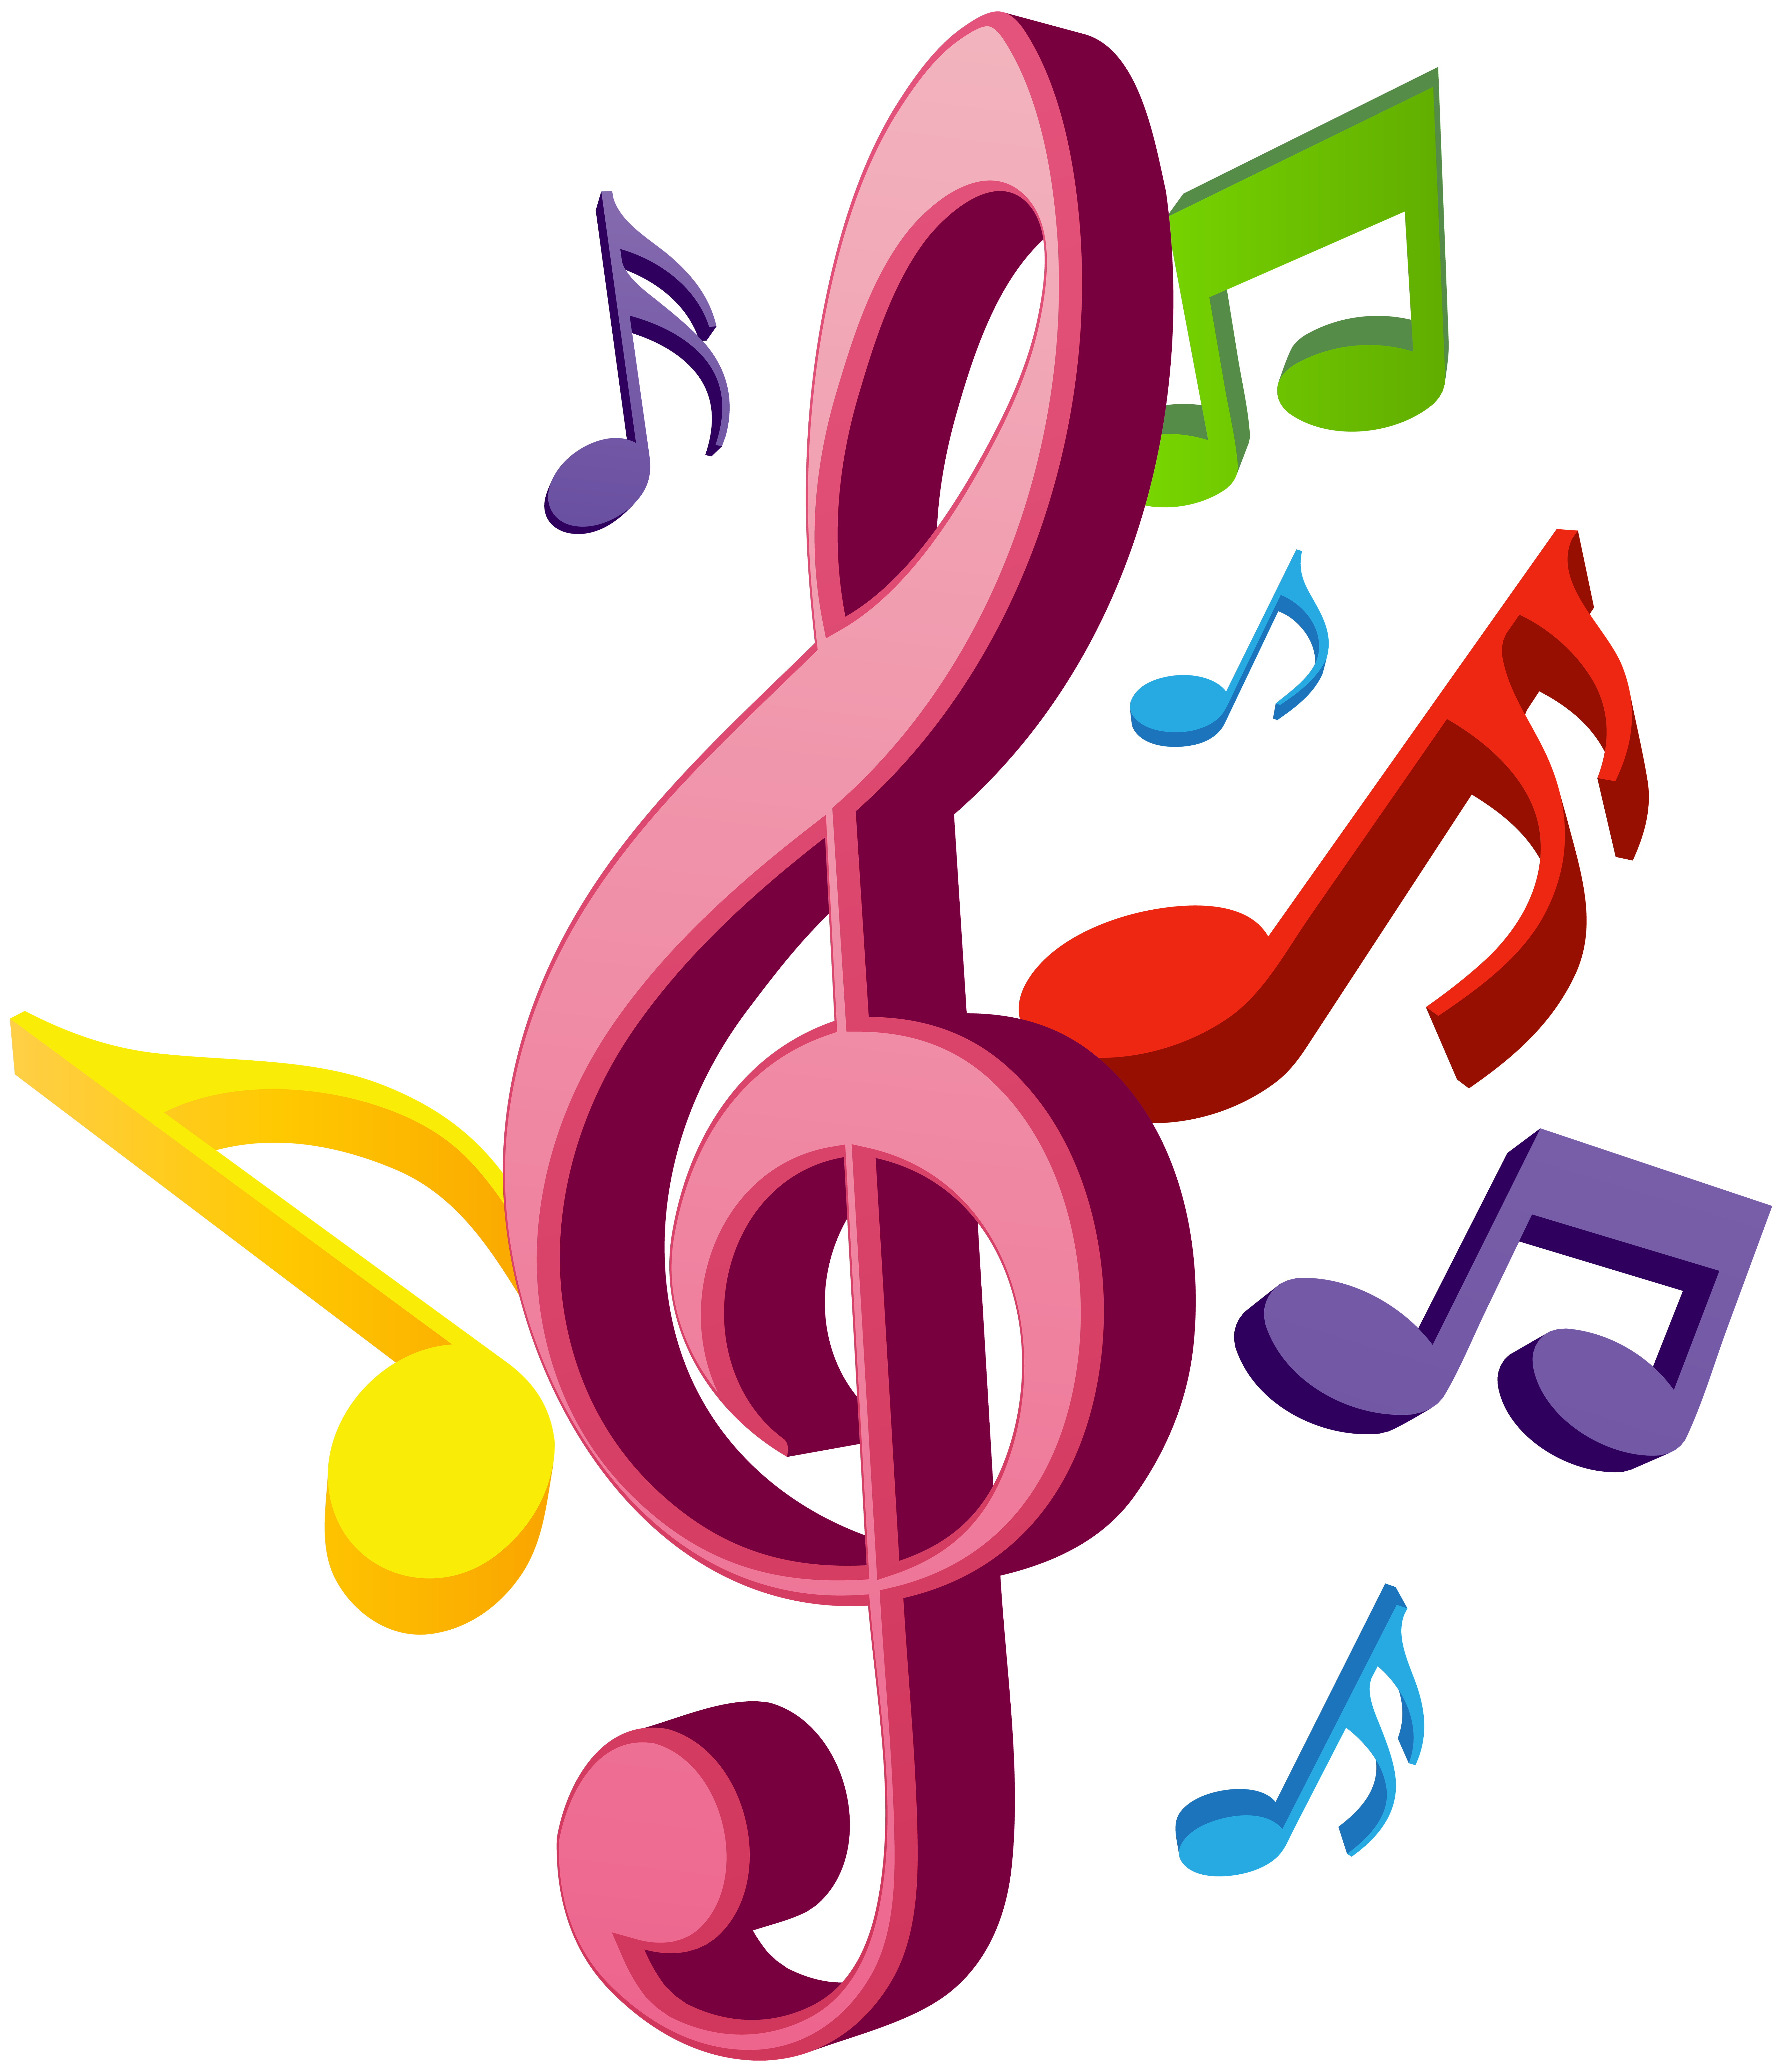 clipart download Strikingly inpiration notes free. Art and music clipart